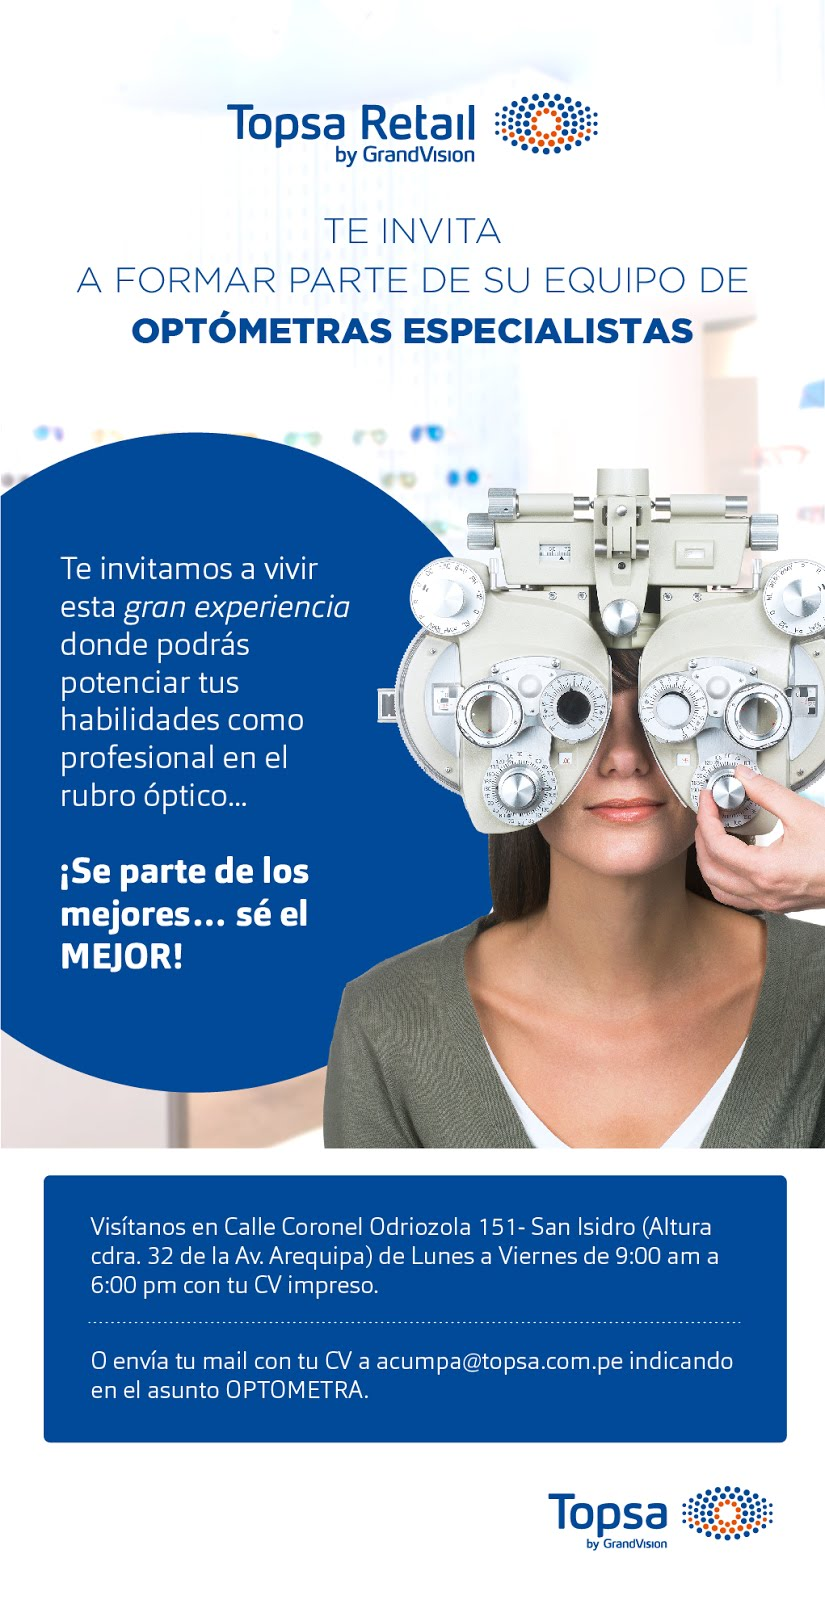 OPTOMETRAS